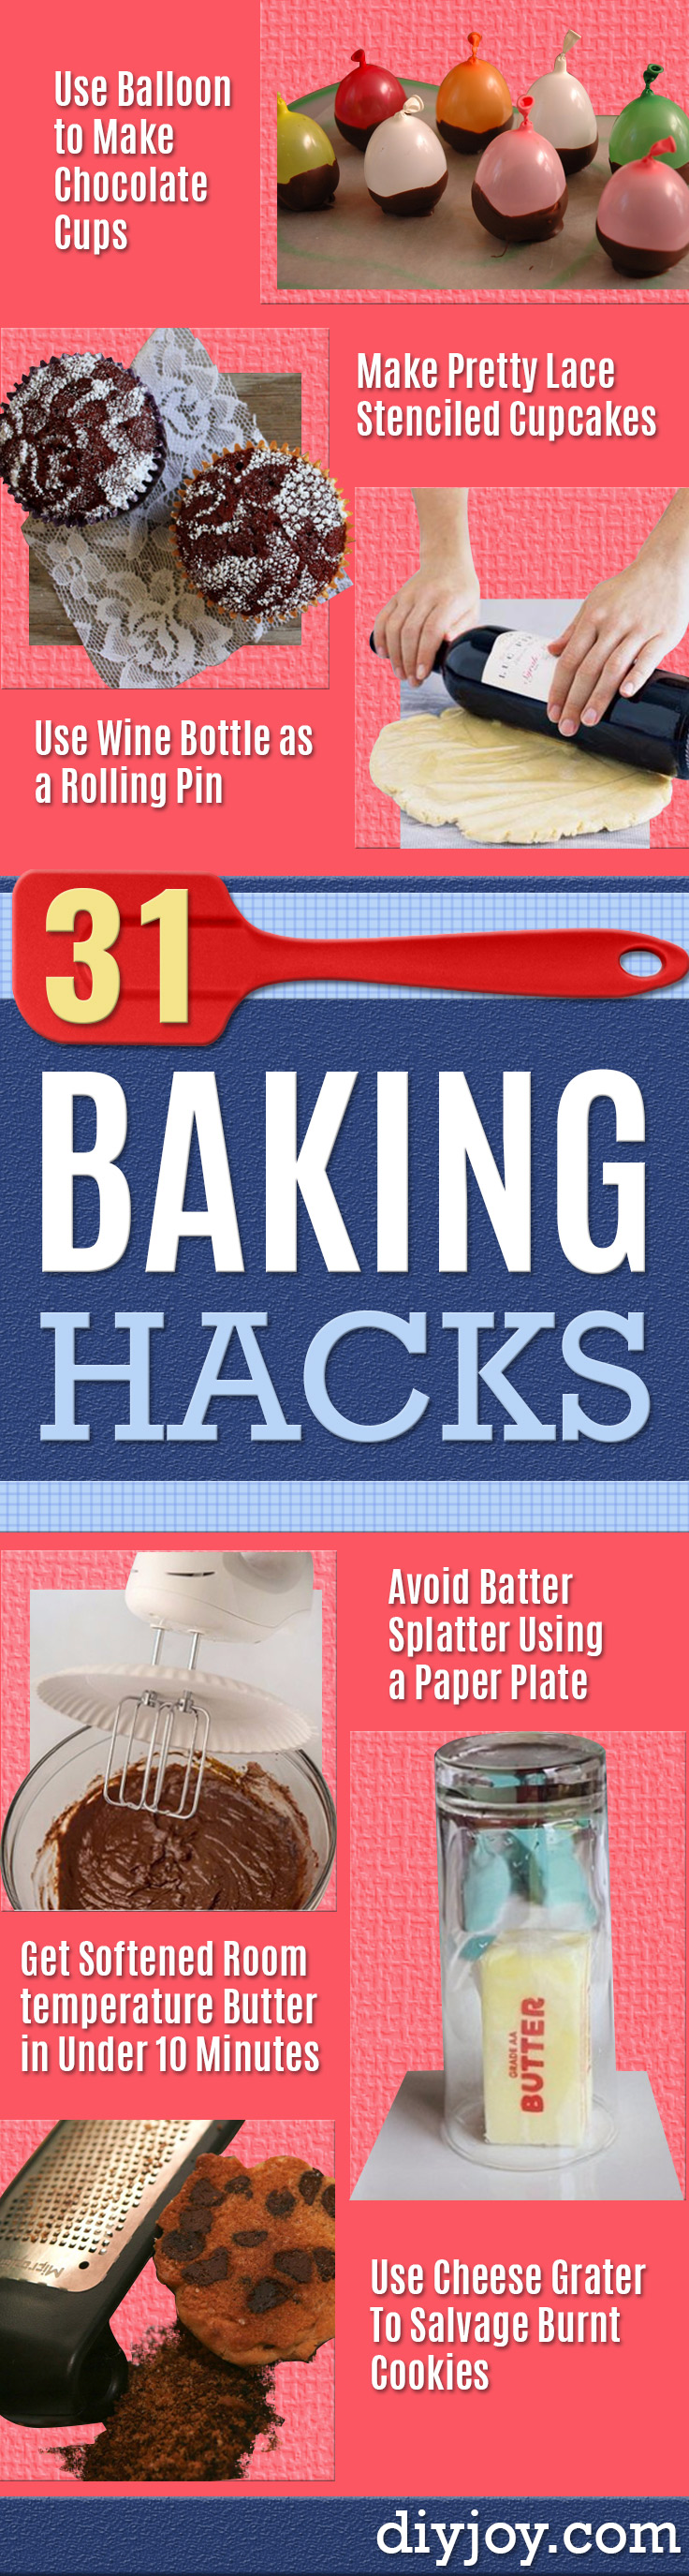 Best Baking Hacks - DIY Cooking Tips and Tricks for Baking Recipes - Quick Ways to Bake Cake, Cupcakes, Desserts and Cookies - Kitchen Lifehacks for Bakers